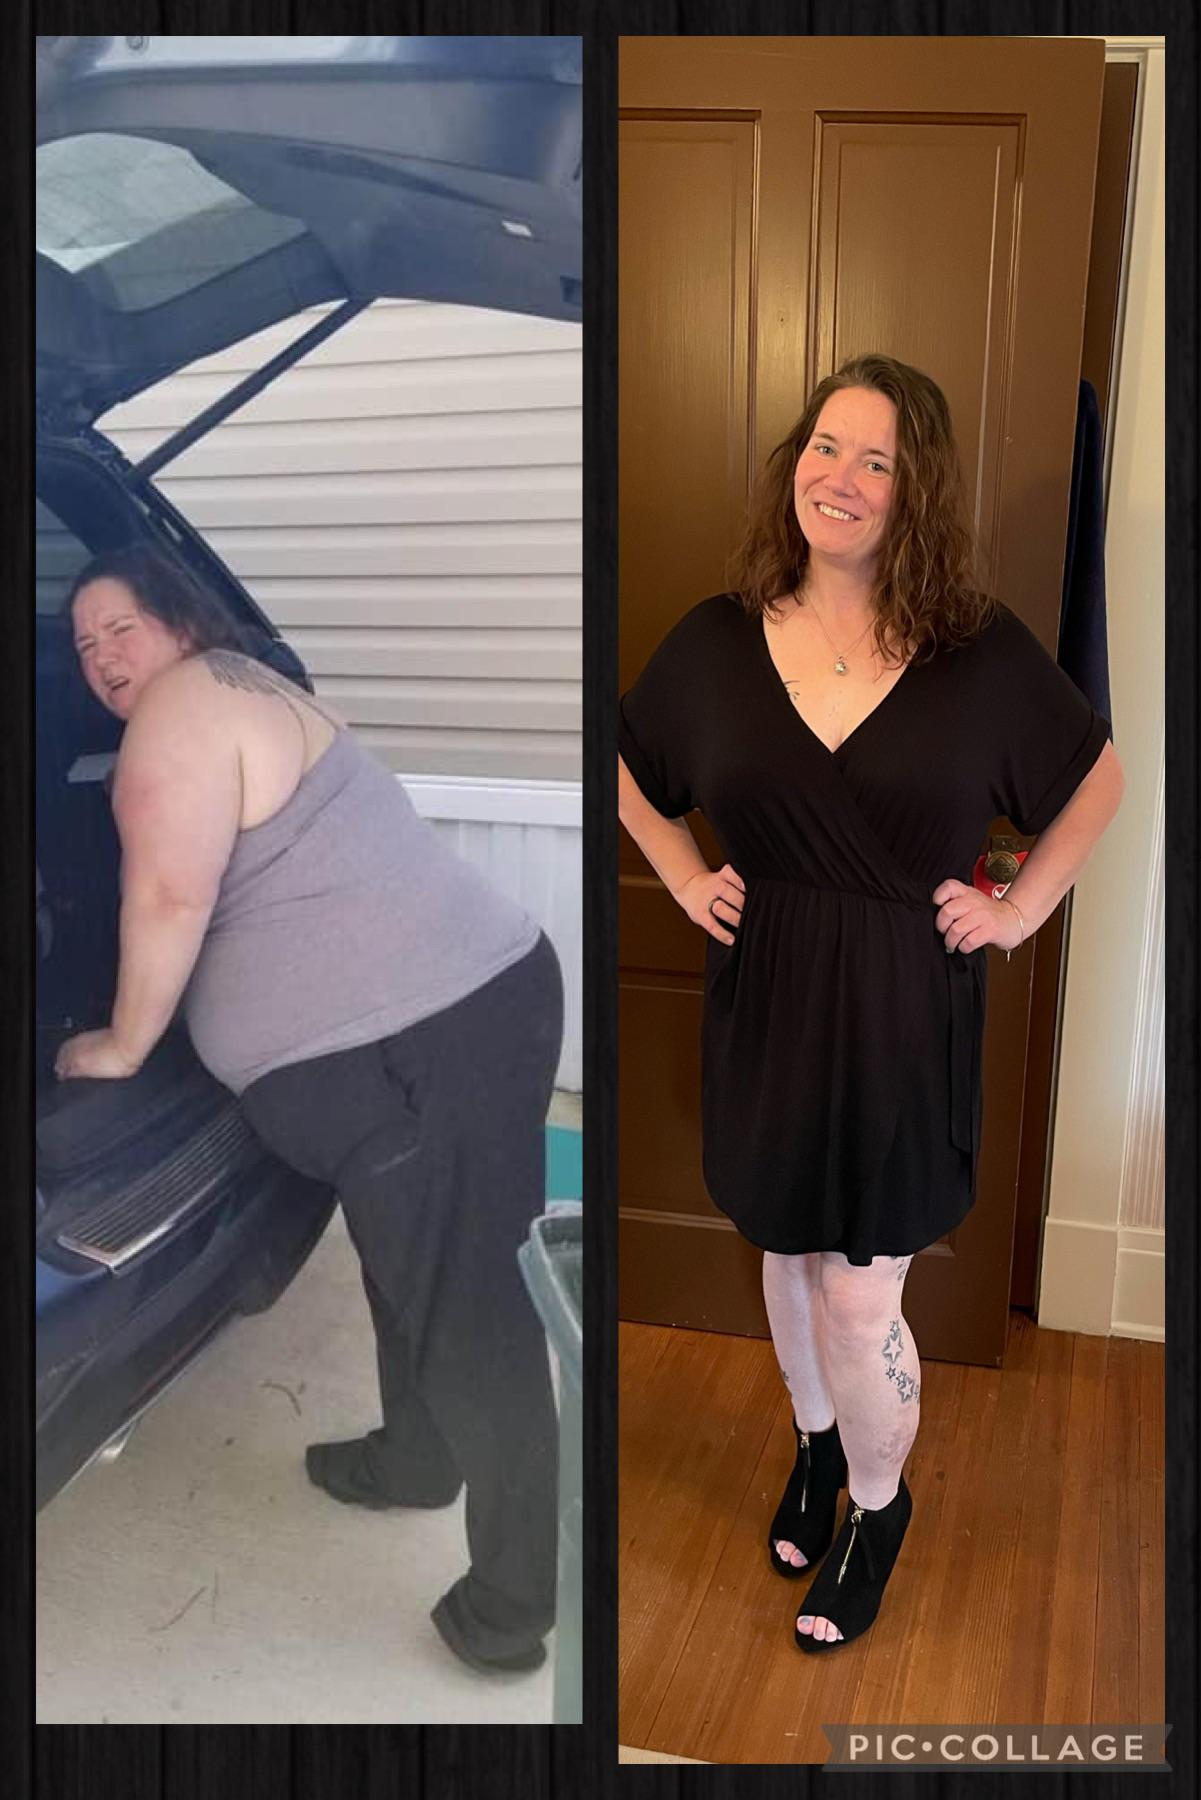 151 lbs Fat Loss Before and After 5 feet 3 Female 301 lbs to 150 lbs